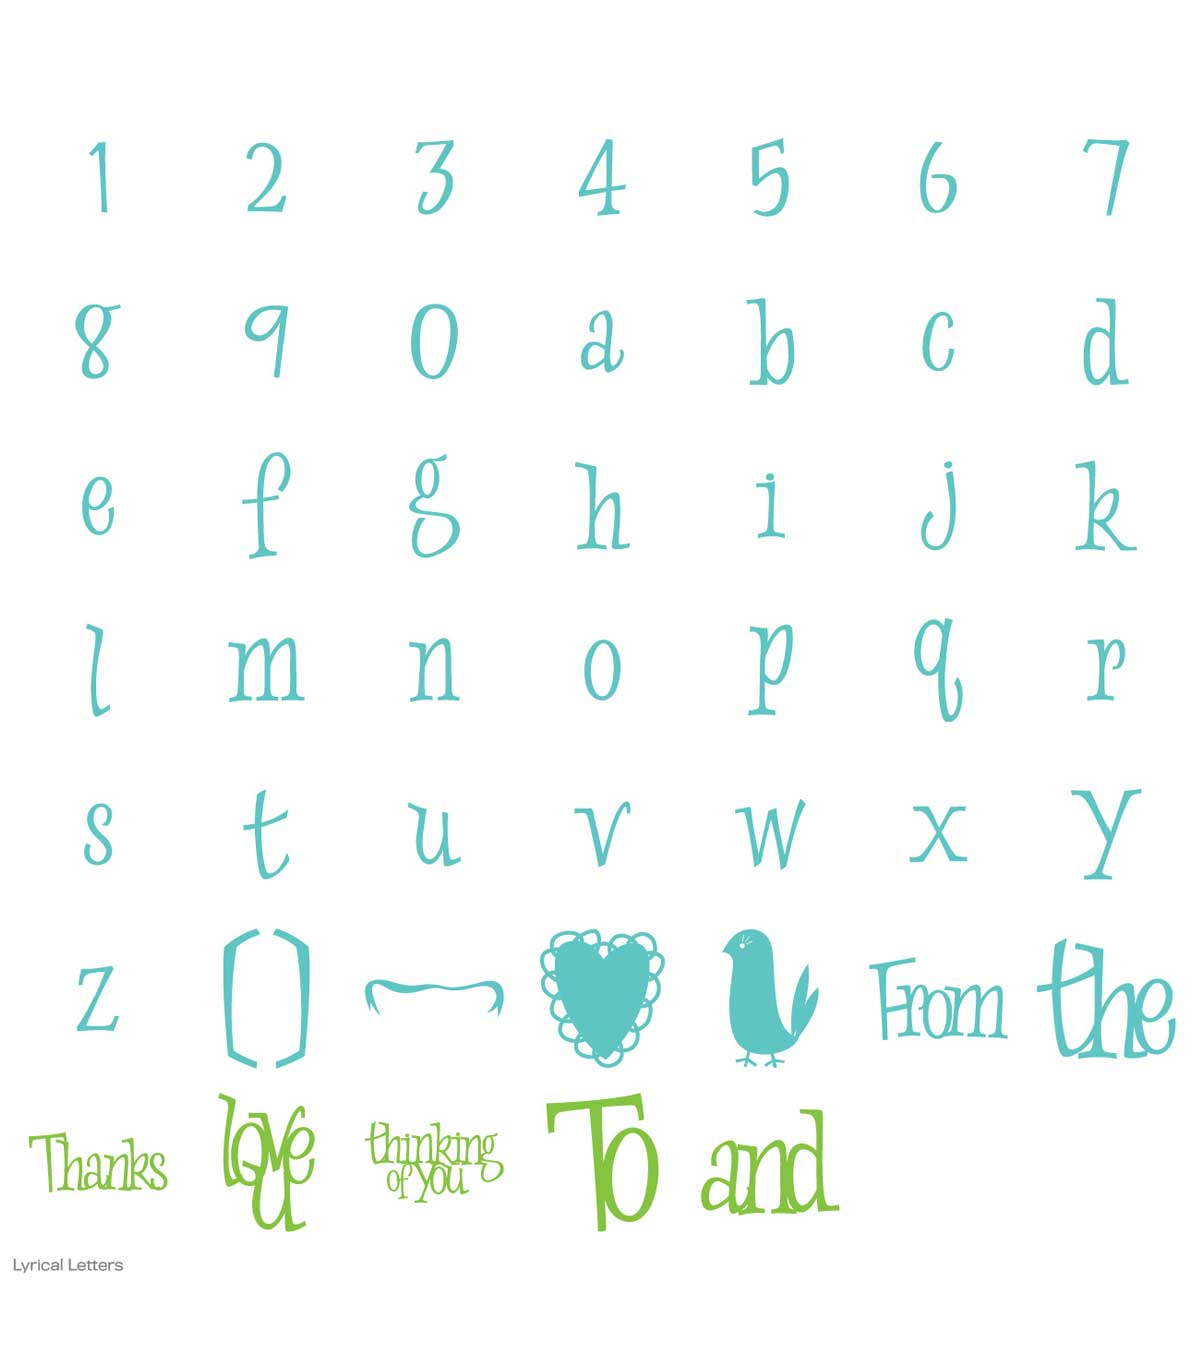 Cricut® Lyrical Letter Cartridge